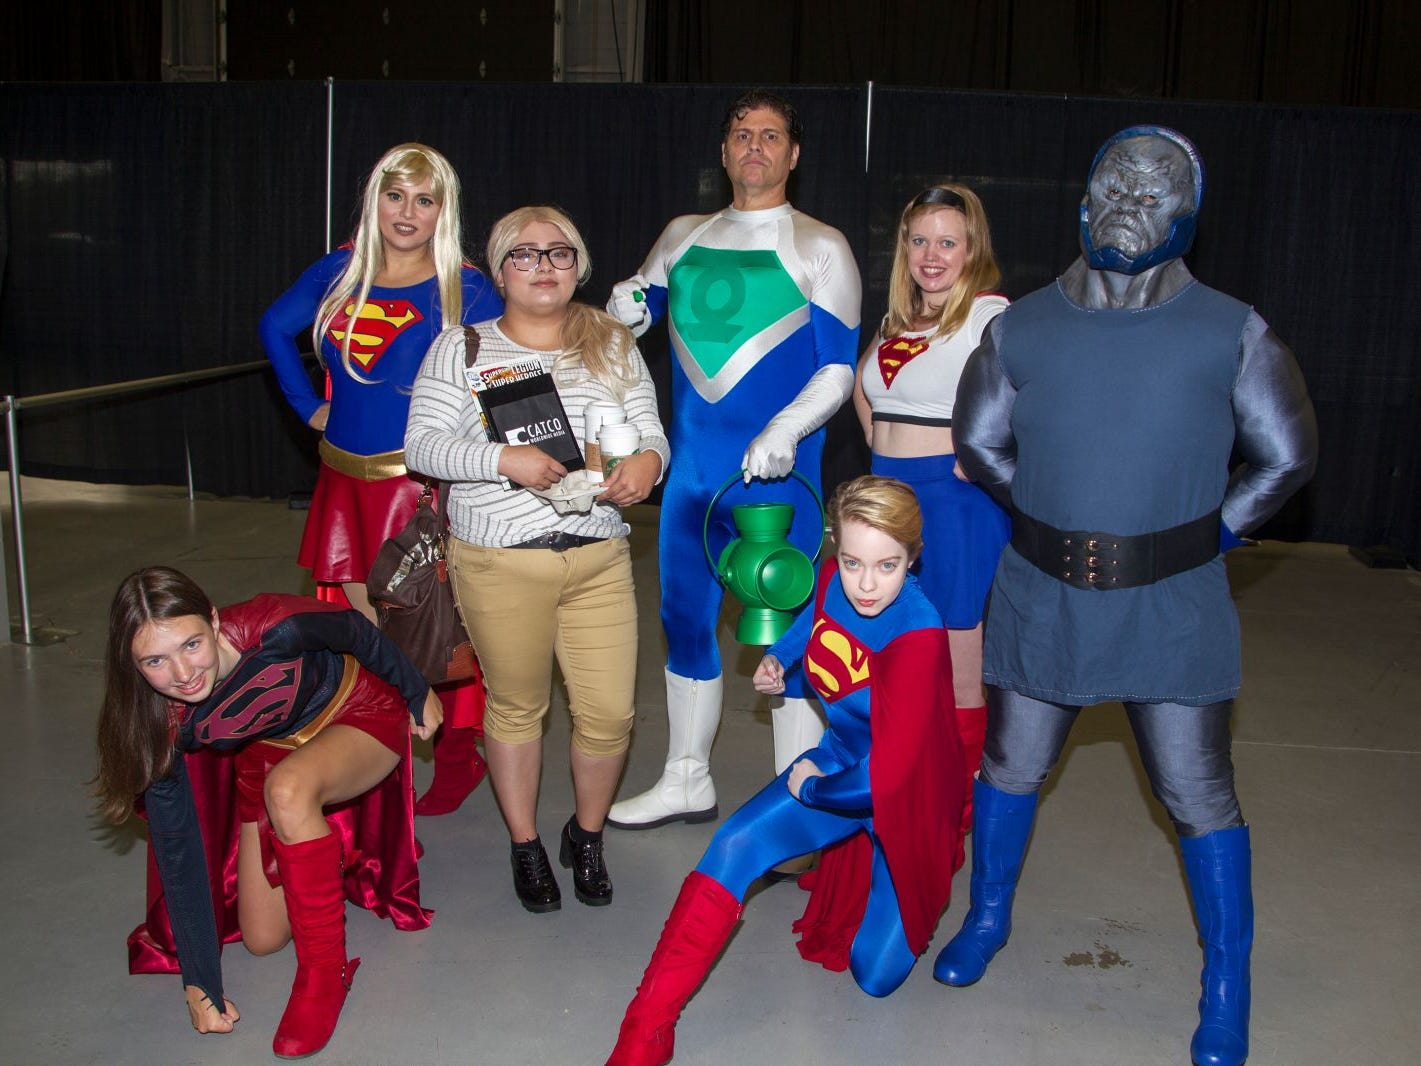 The 2018 Heroes and Villains Fan Fest took place at the New Jersey Convention & Expo Center. 09/09/2018